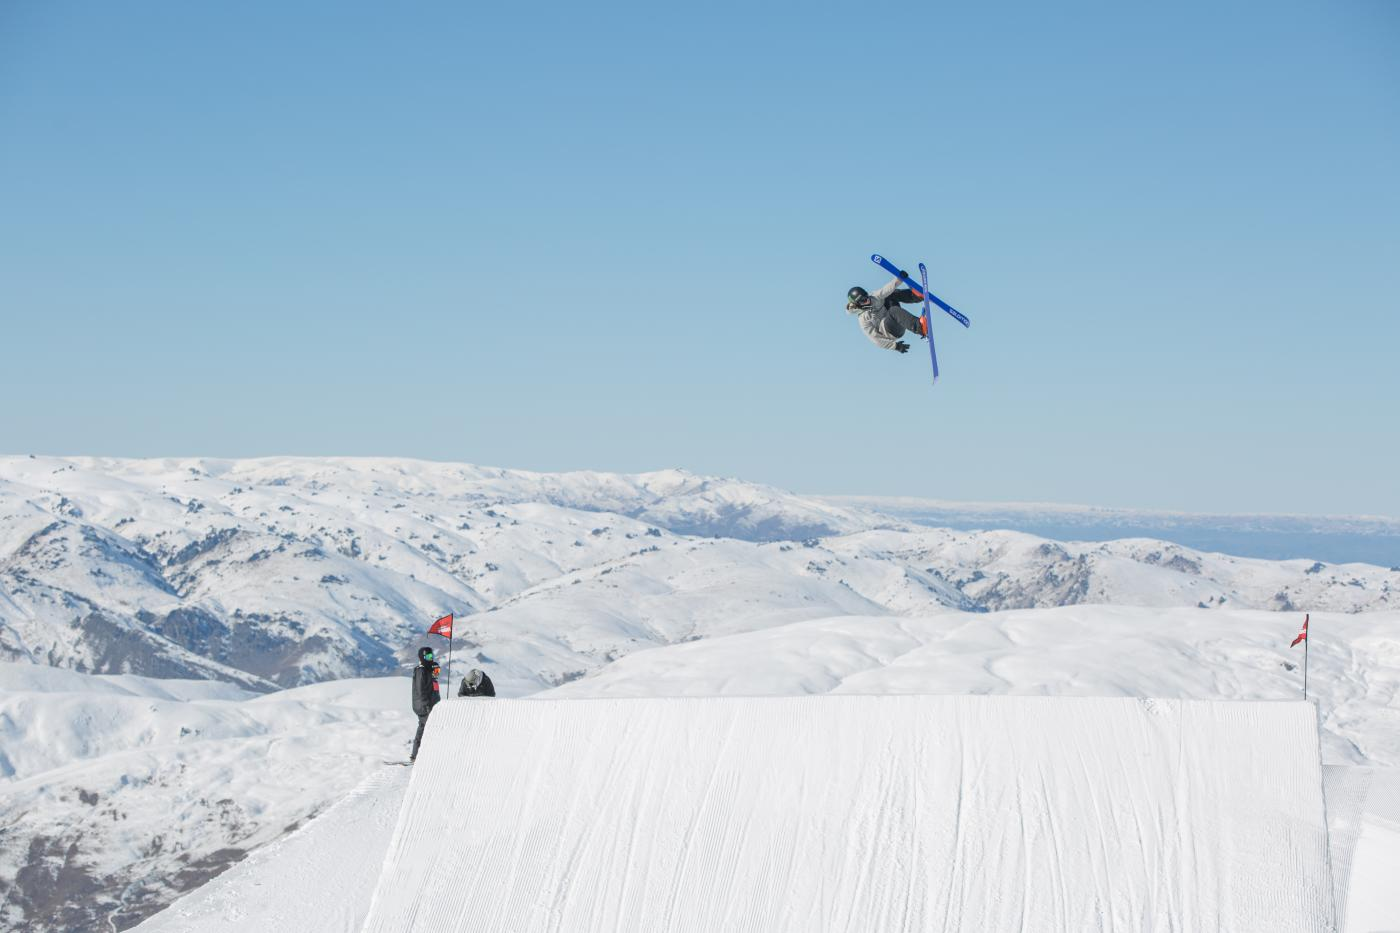 James Woodsy Woods at Cardrona Alpine Resort